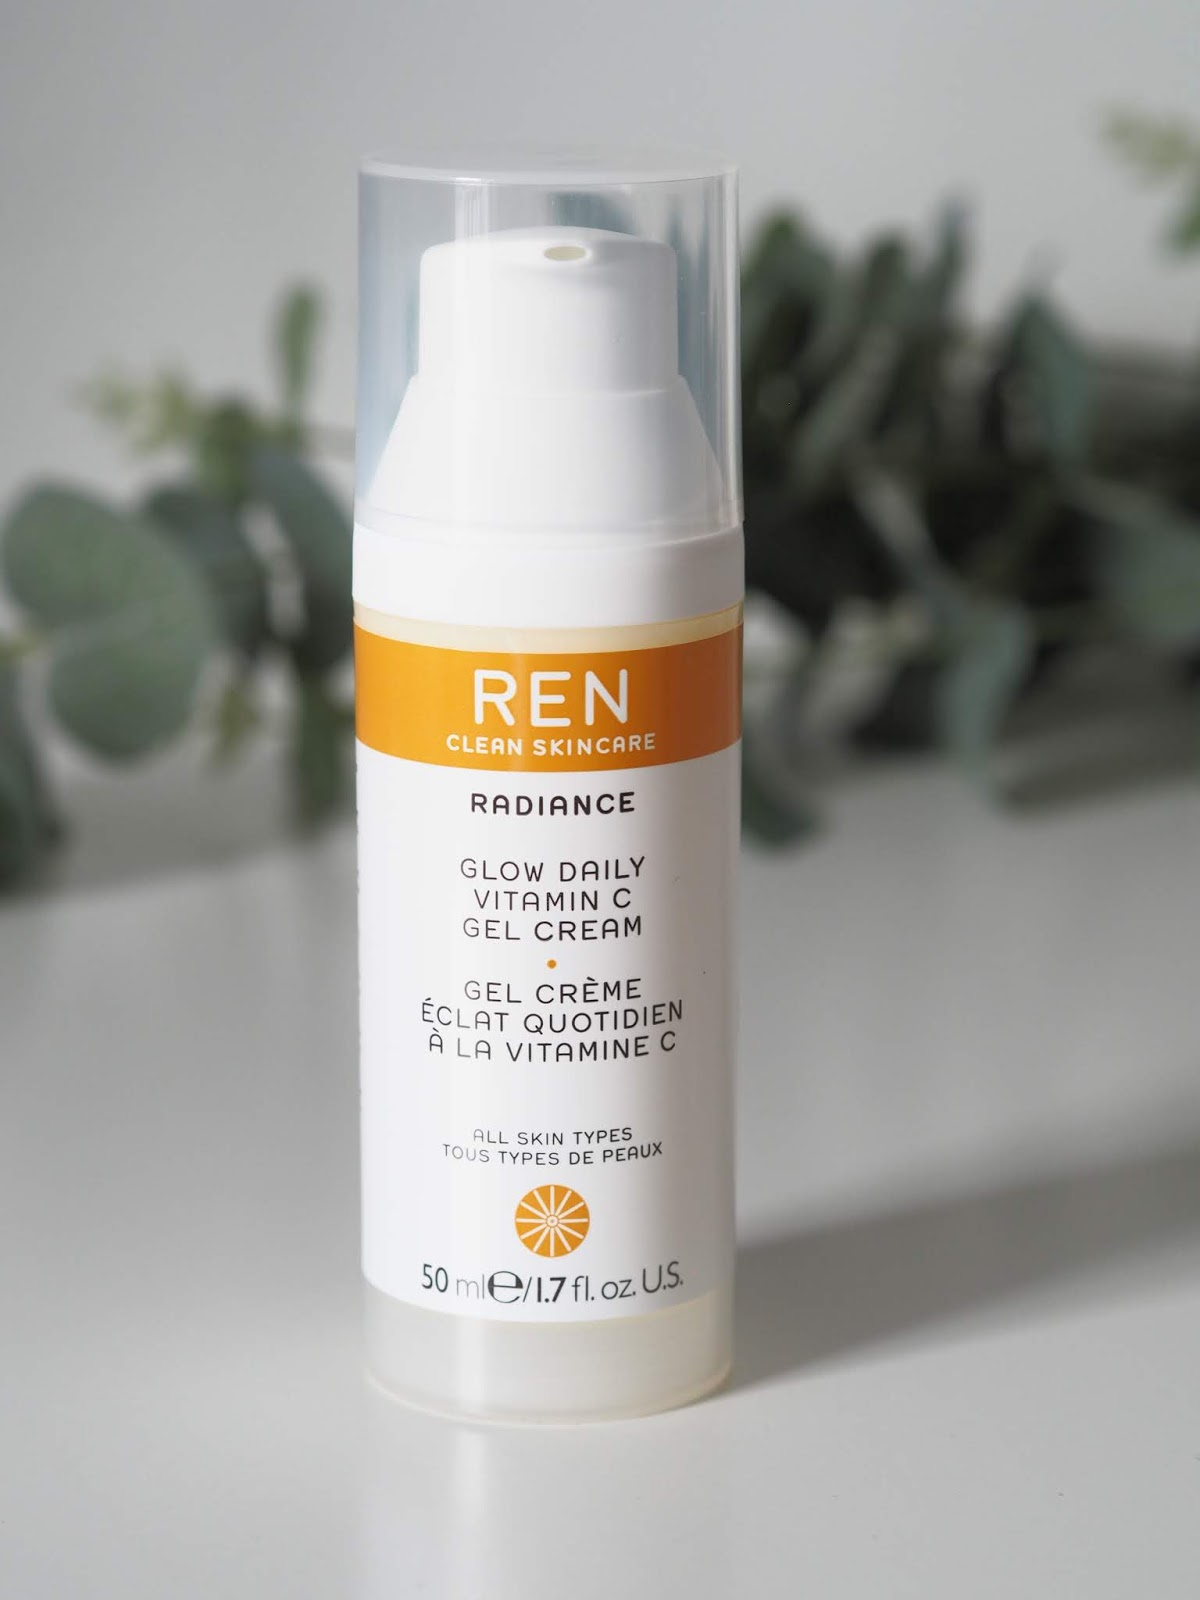 REN clean skincare \ glow daily vitamin c gel cream \ Radiance